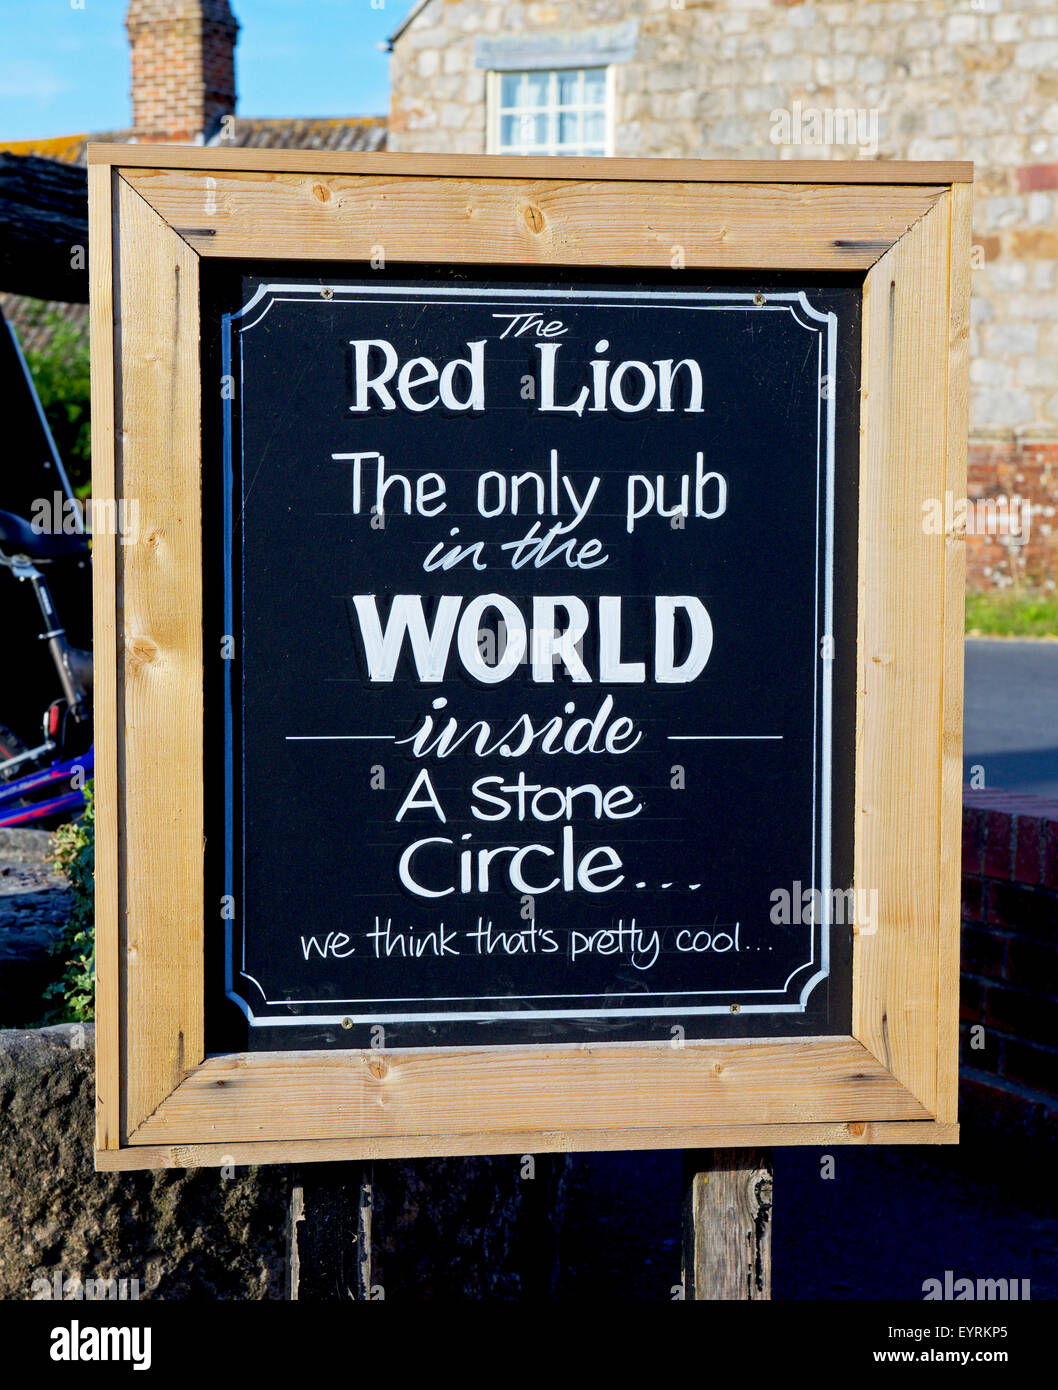 Signe, Red Lion Pub, d'Avebury, Wiltshire, Angleterre, Royaume-Uni, suggérant que c'est 'cool' Photo Stock